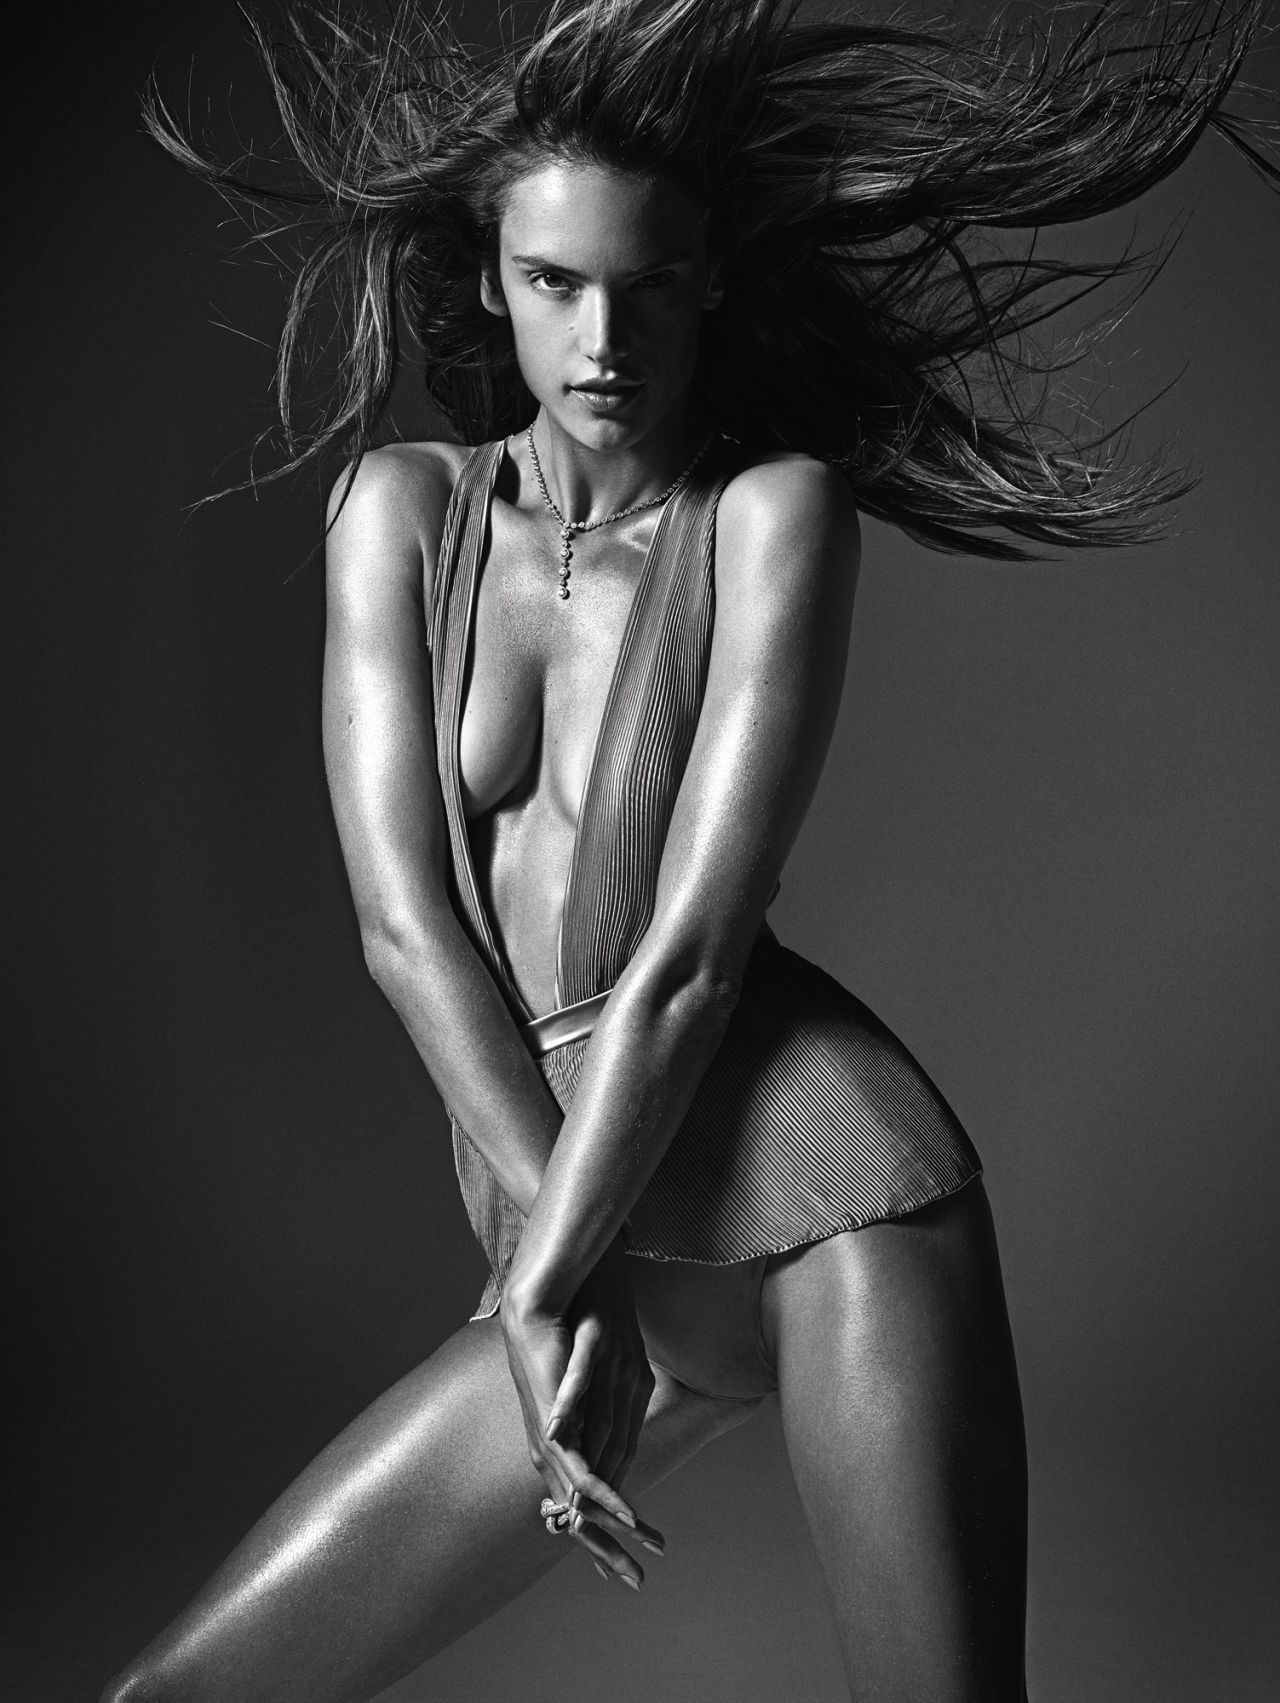 alessandra-ambrosio-w-magazine-march-2014-by-mario-sorrenti-_1